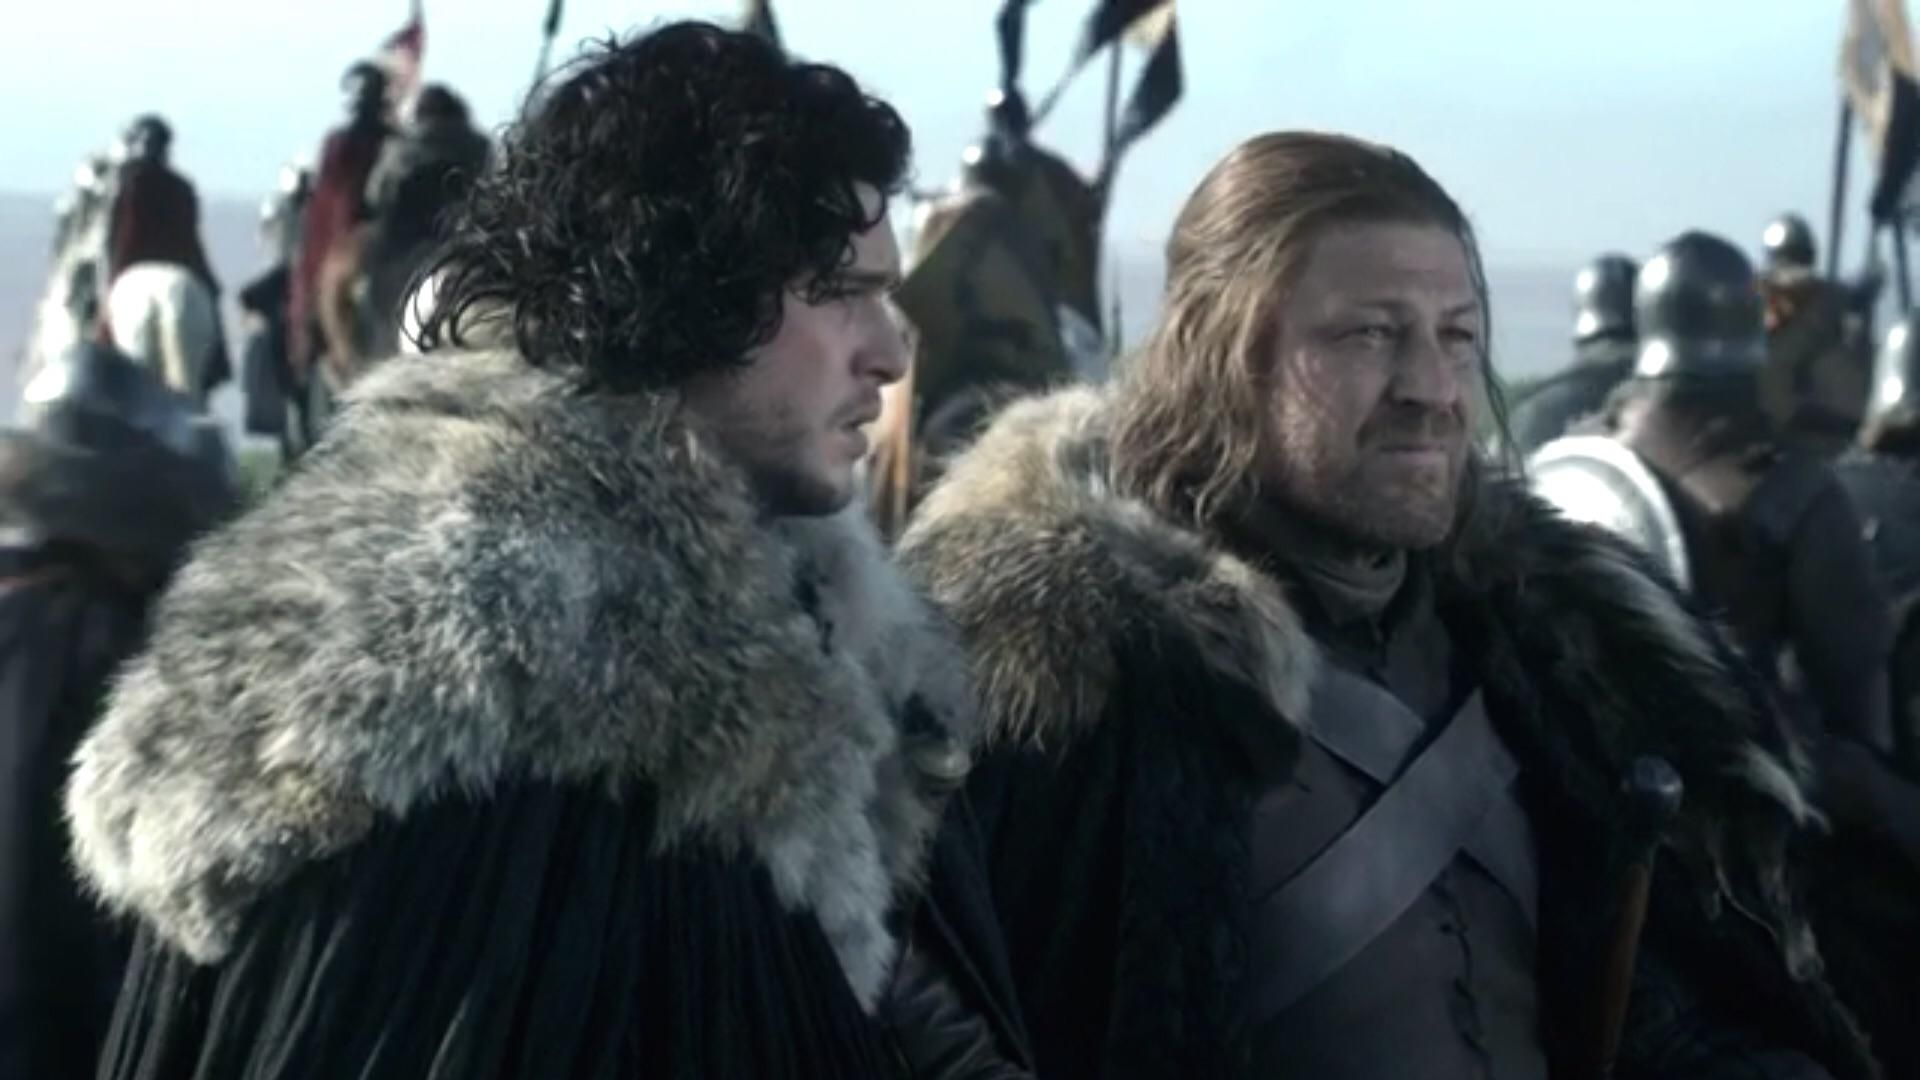 [MAIN SPOILERS] The next time we see each other well talk